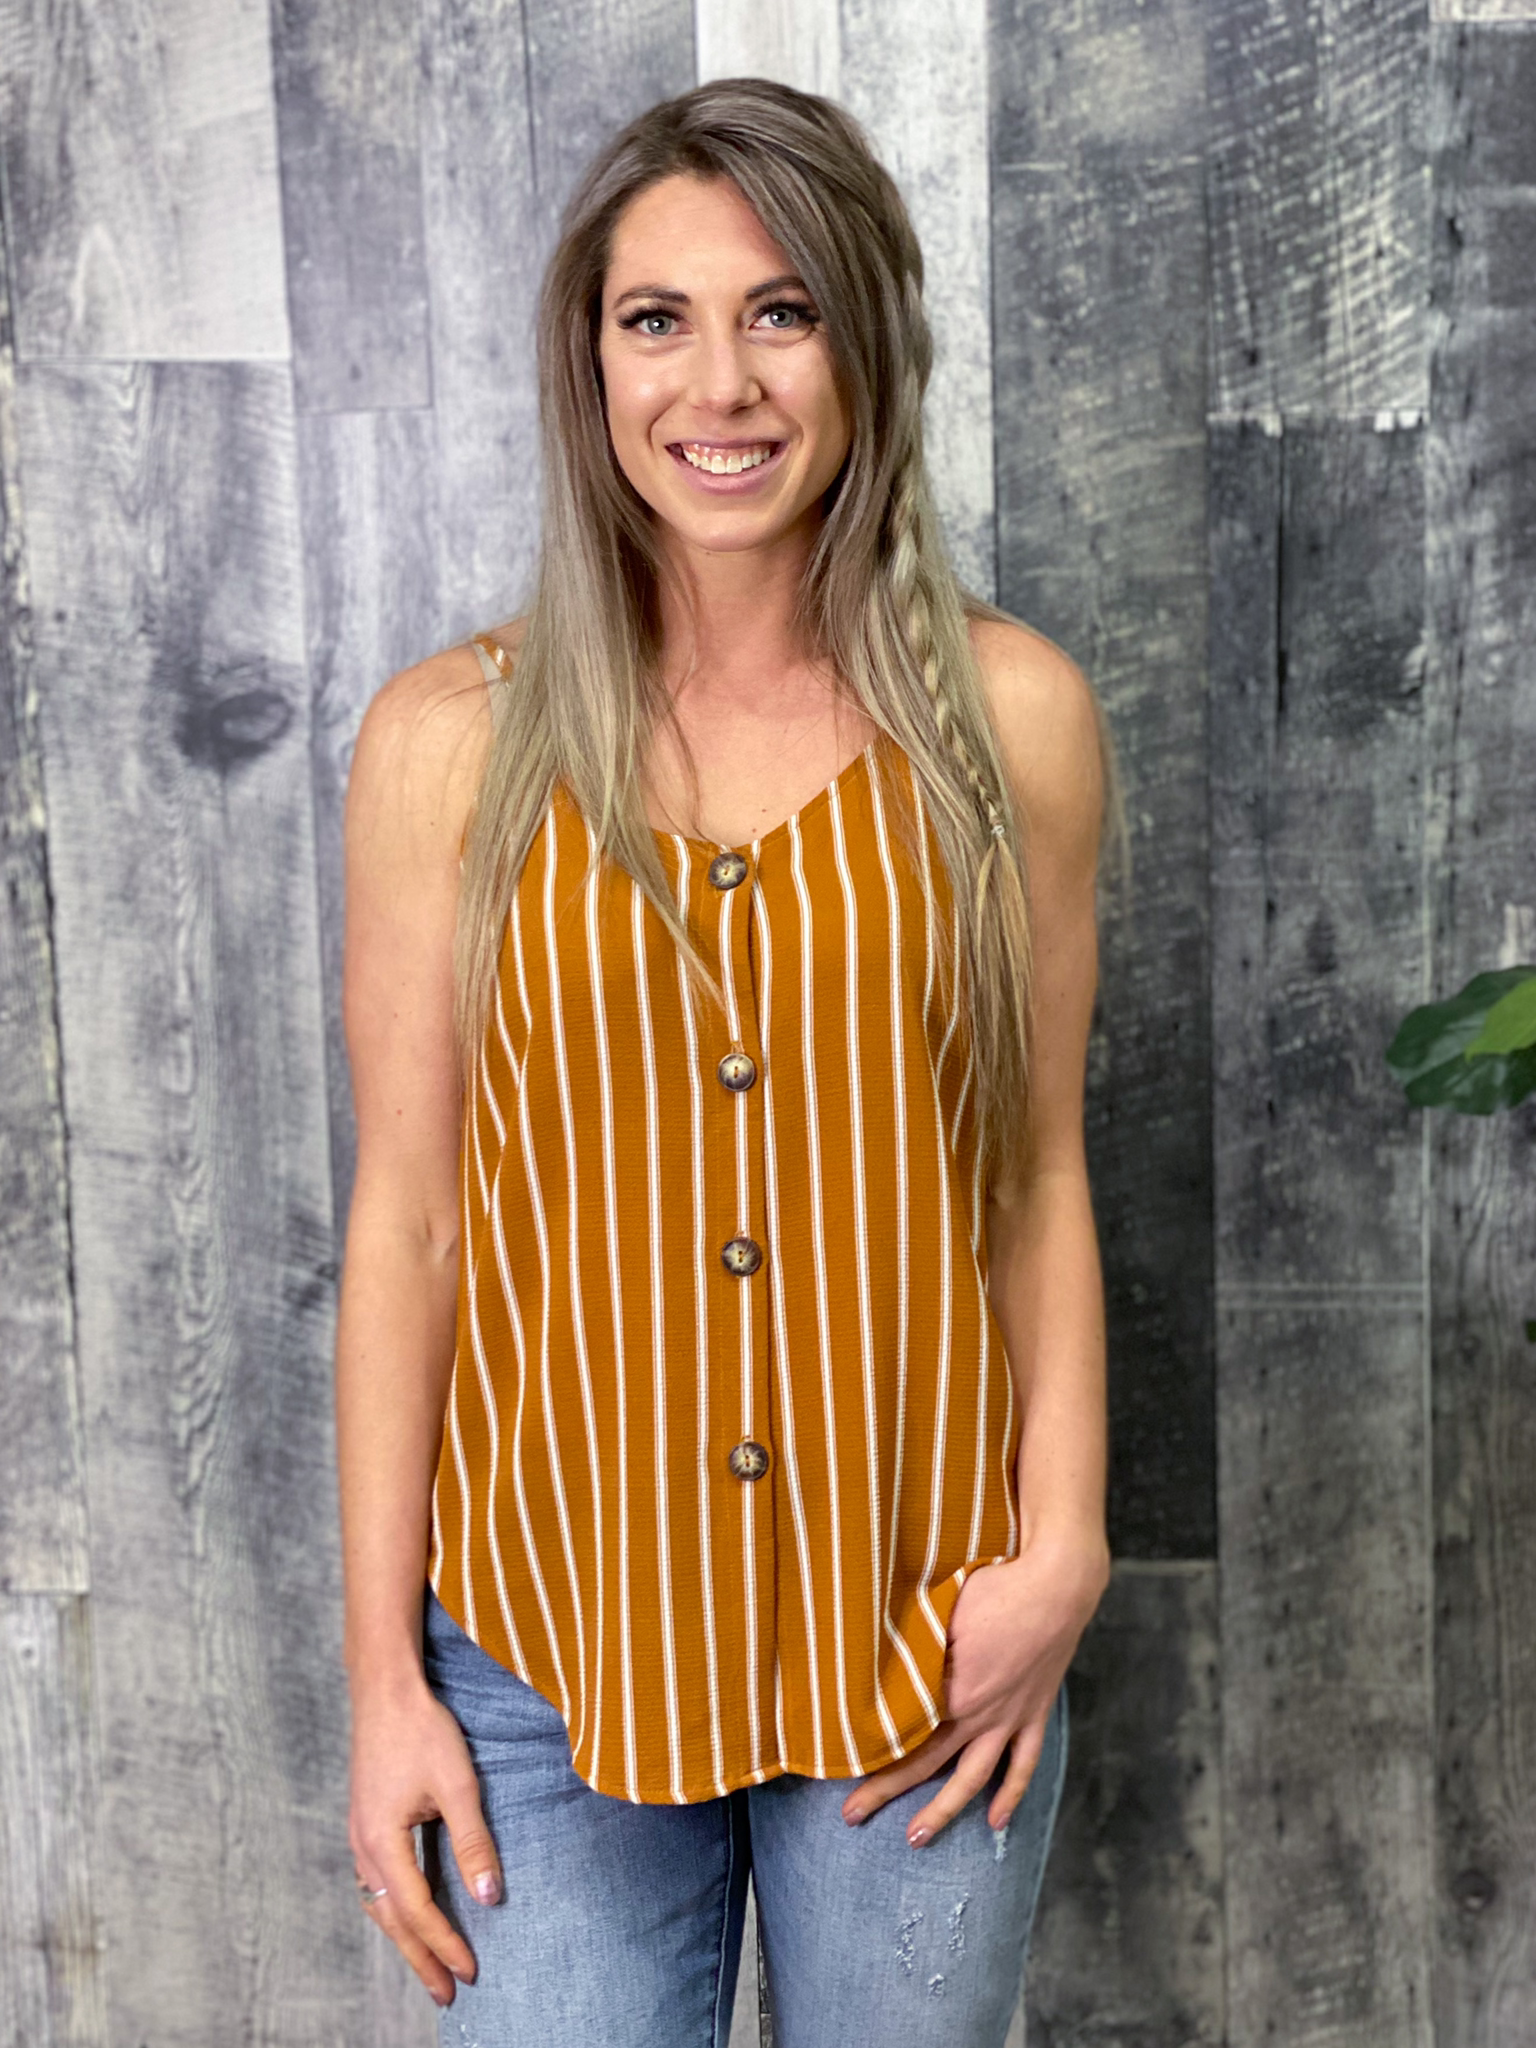 Stripped Tank with Buttons - Mustard 84942